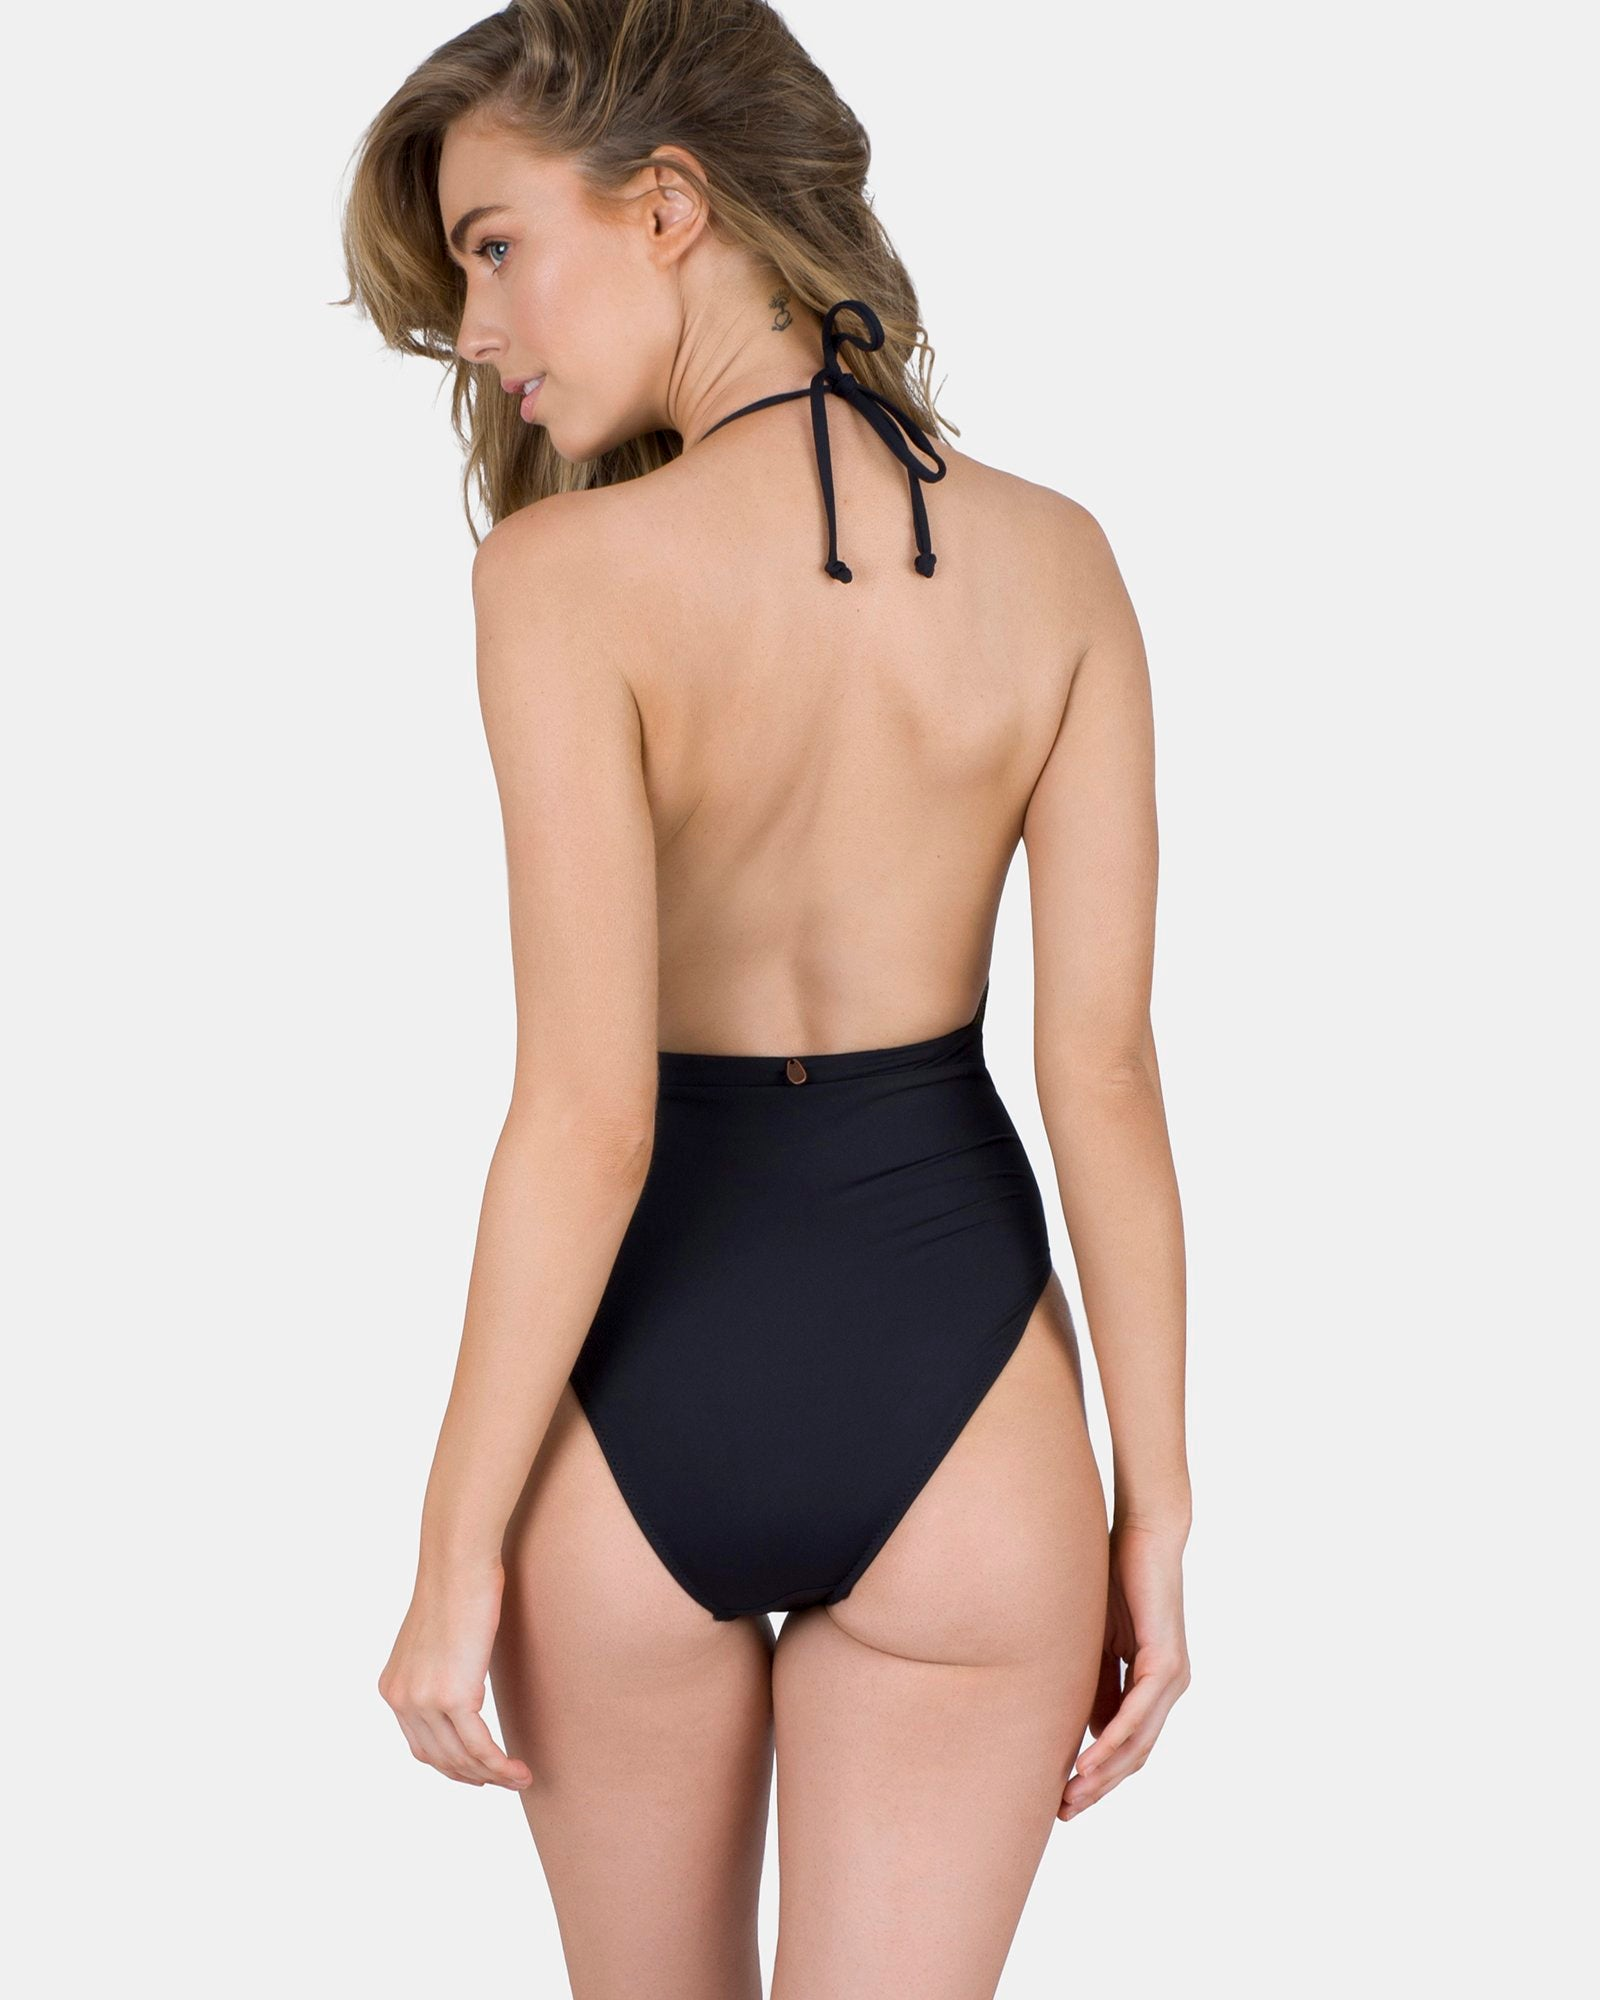 Sunlight Lulu One Piece